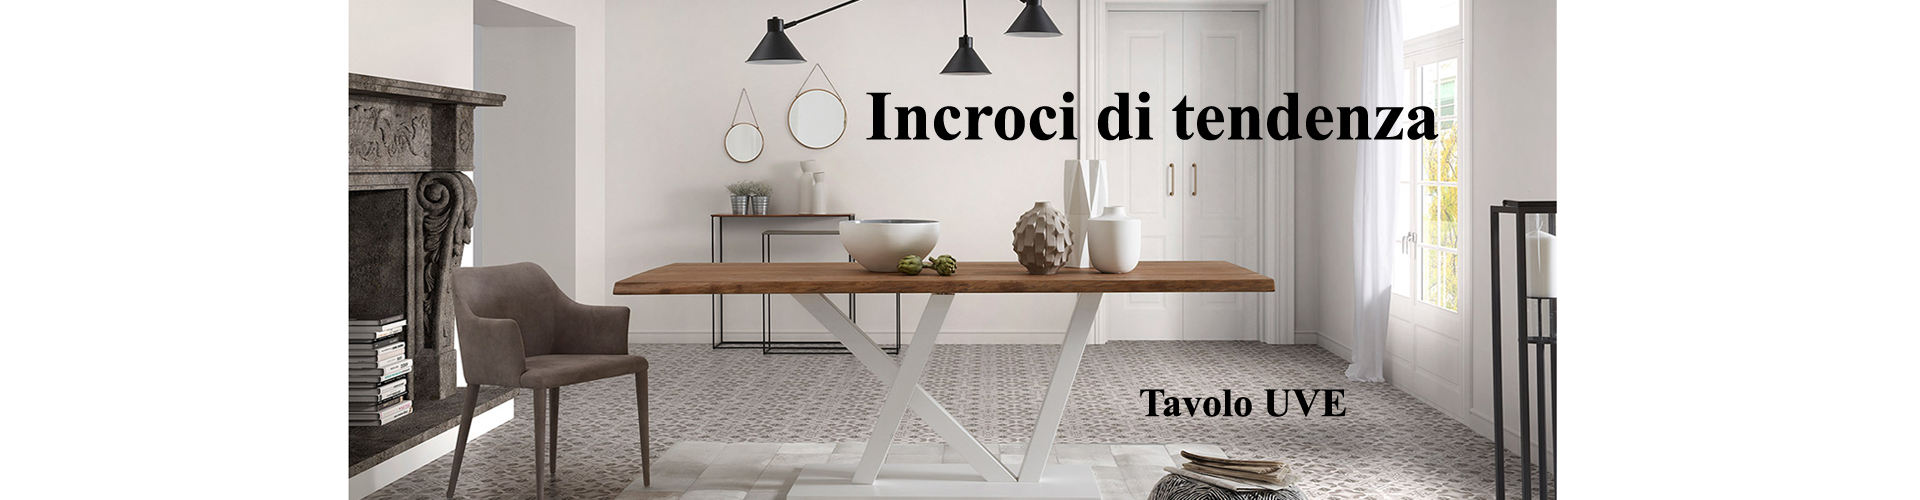 2734719Home-102016-Incroci